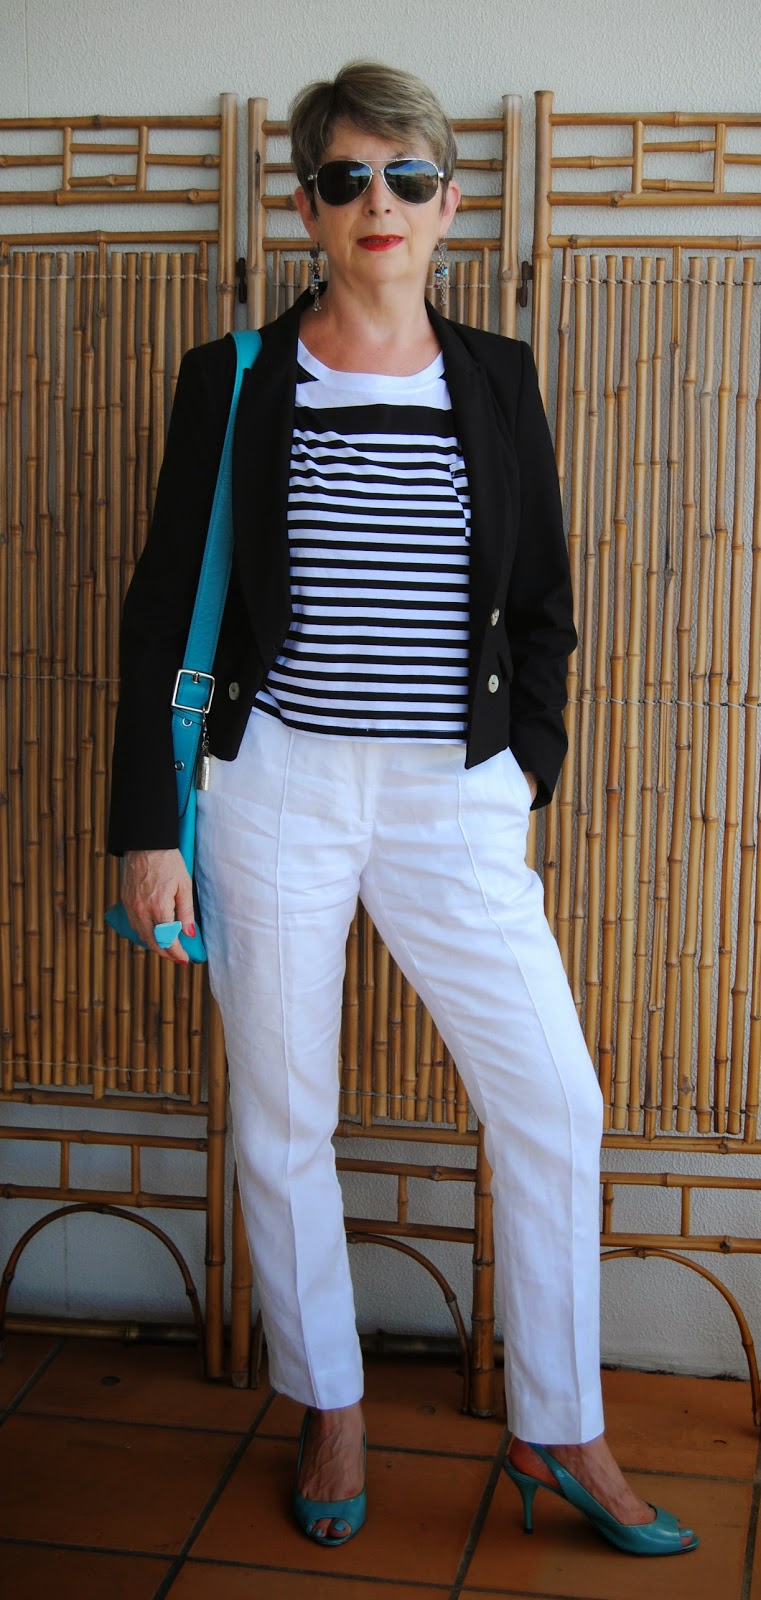 capri pants+jacket+elegant look